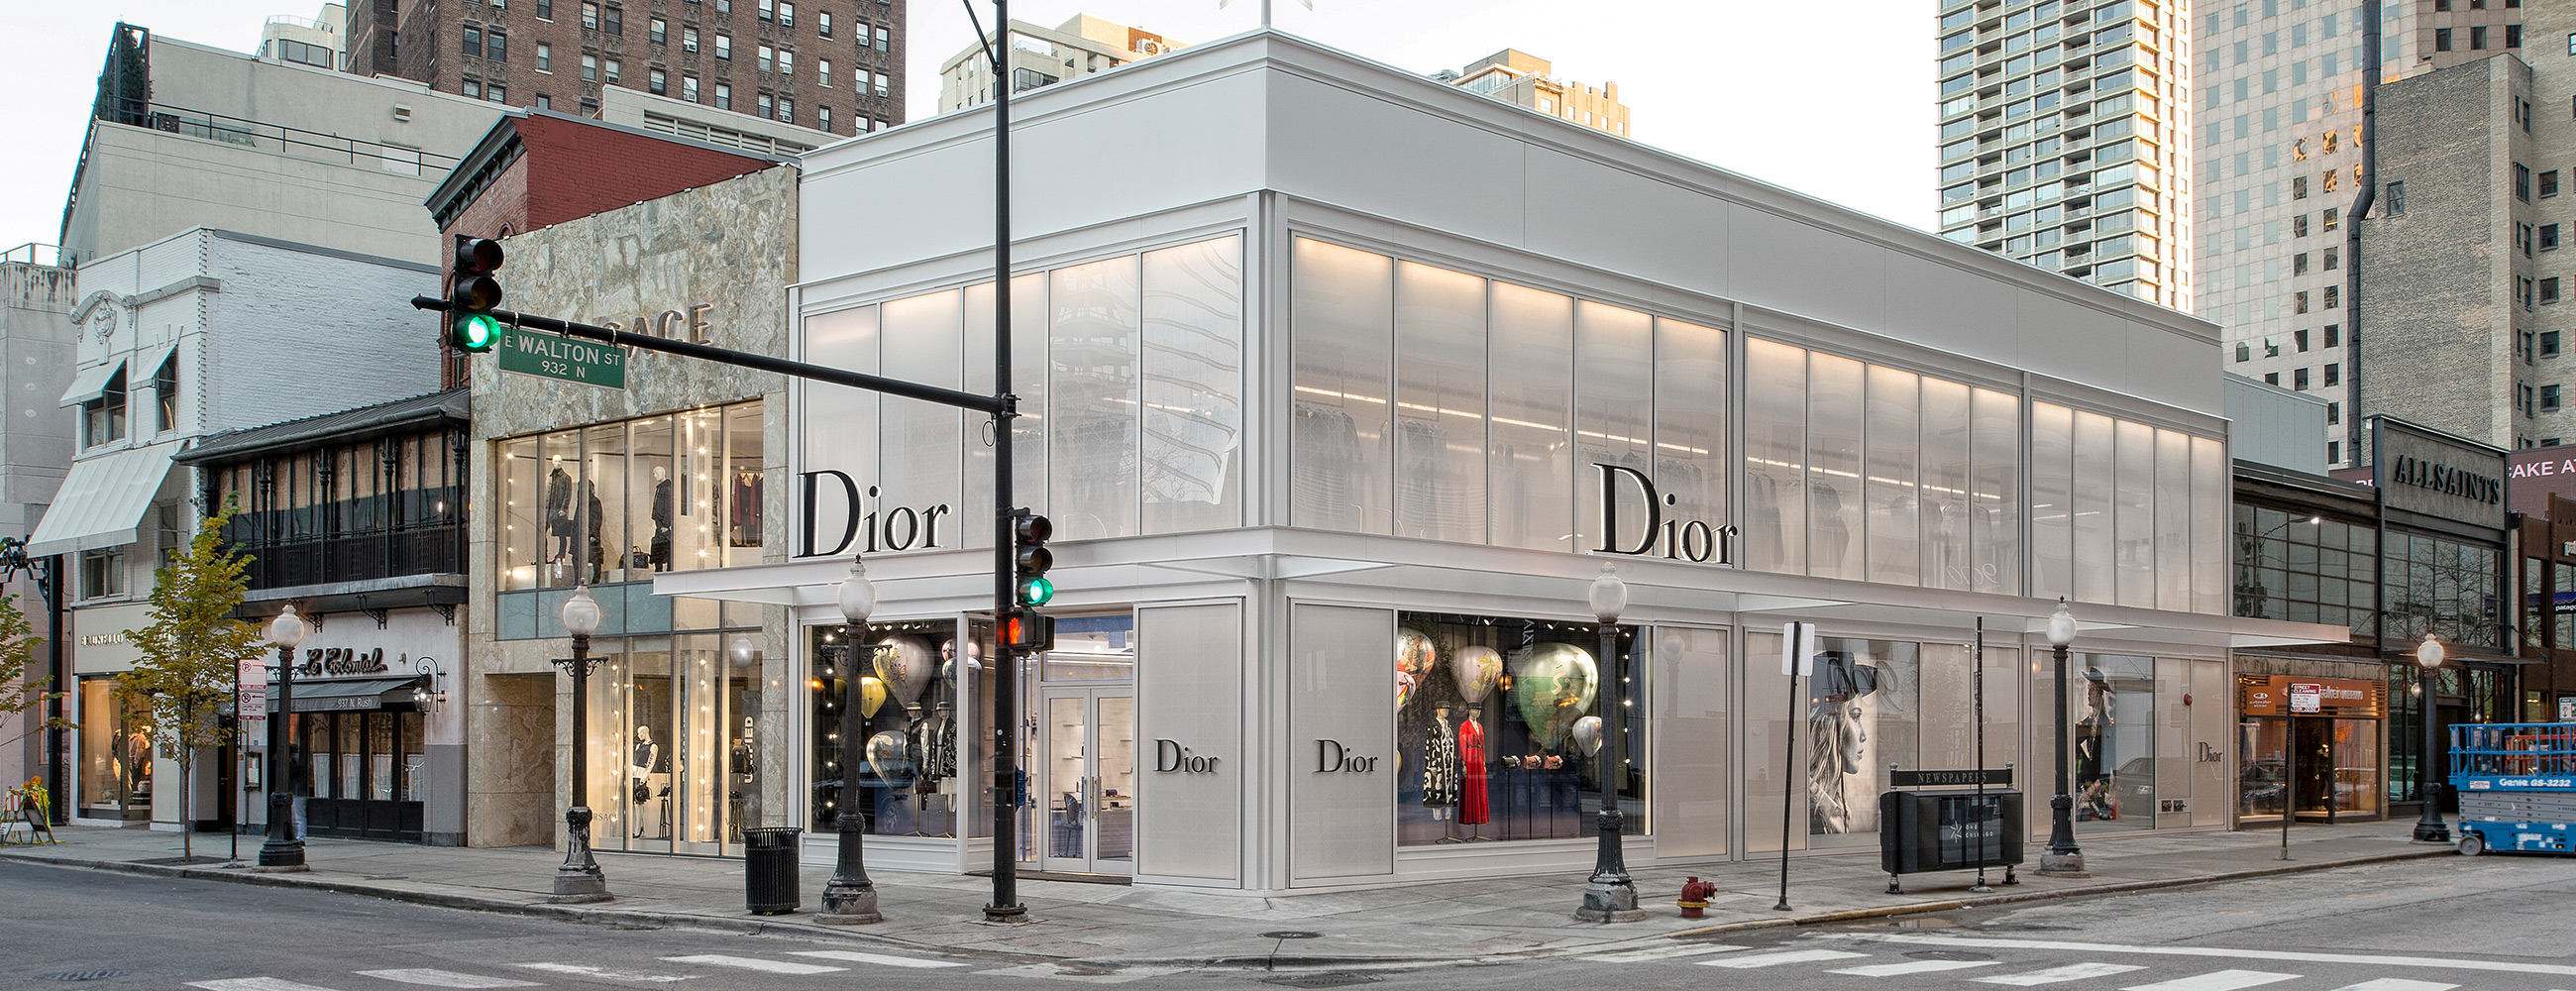 Exterior, street view of Dior flagship in Chicago, AGNORA fabricated Insulated Glass Units up to 146